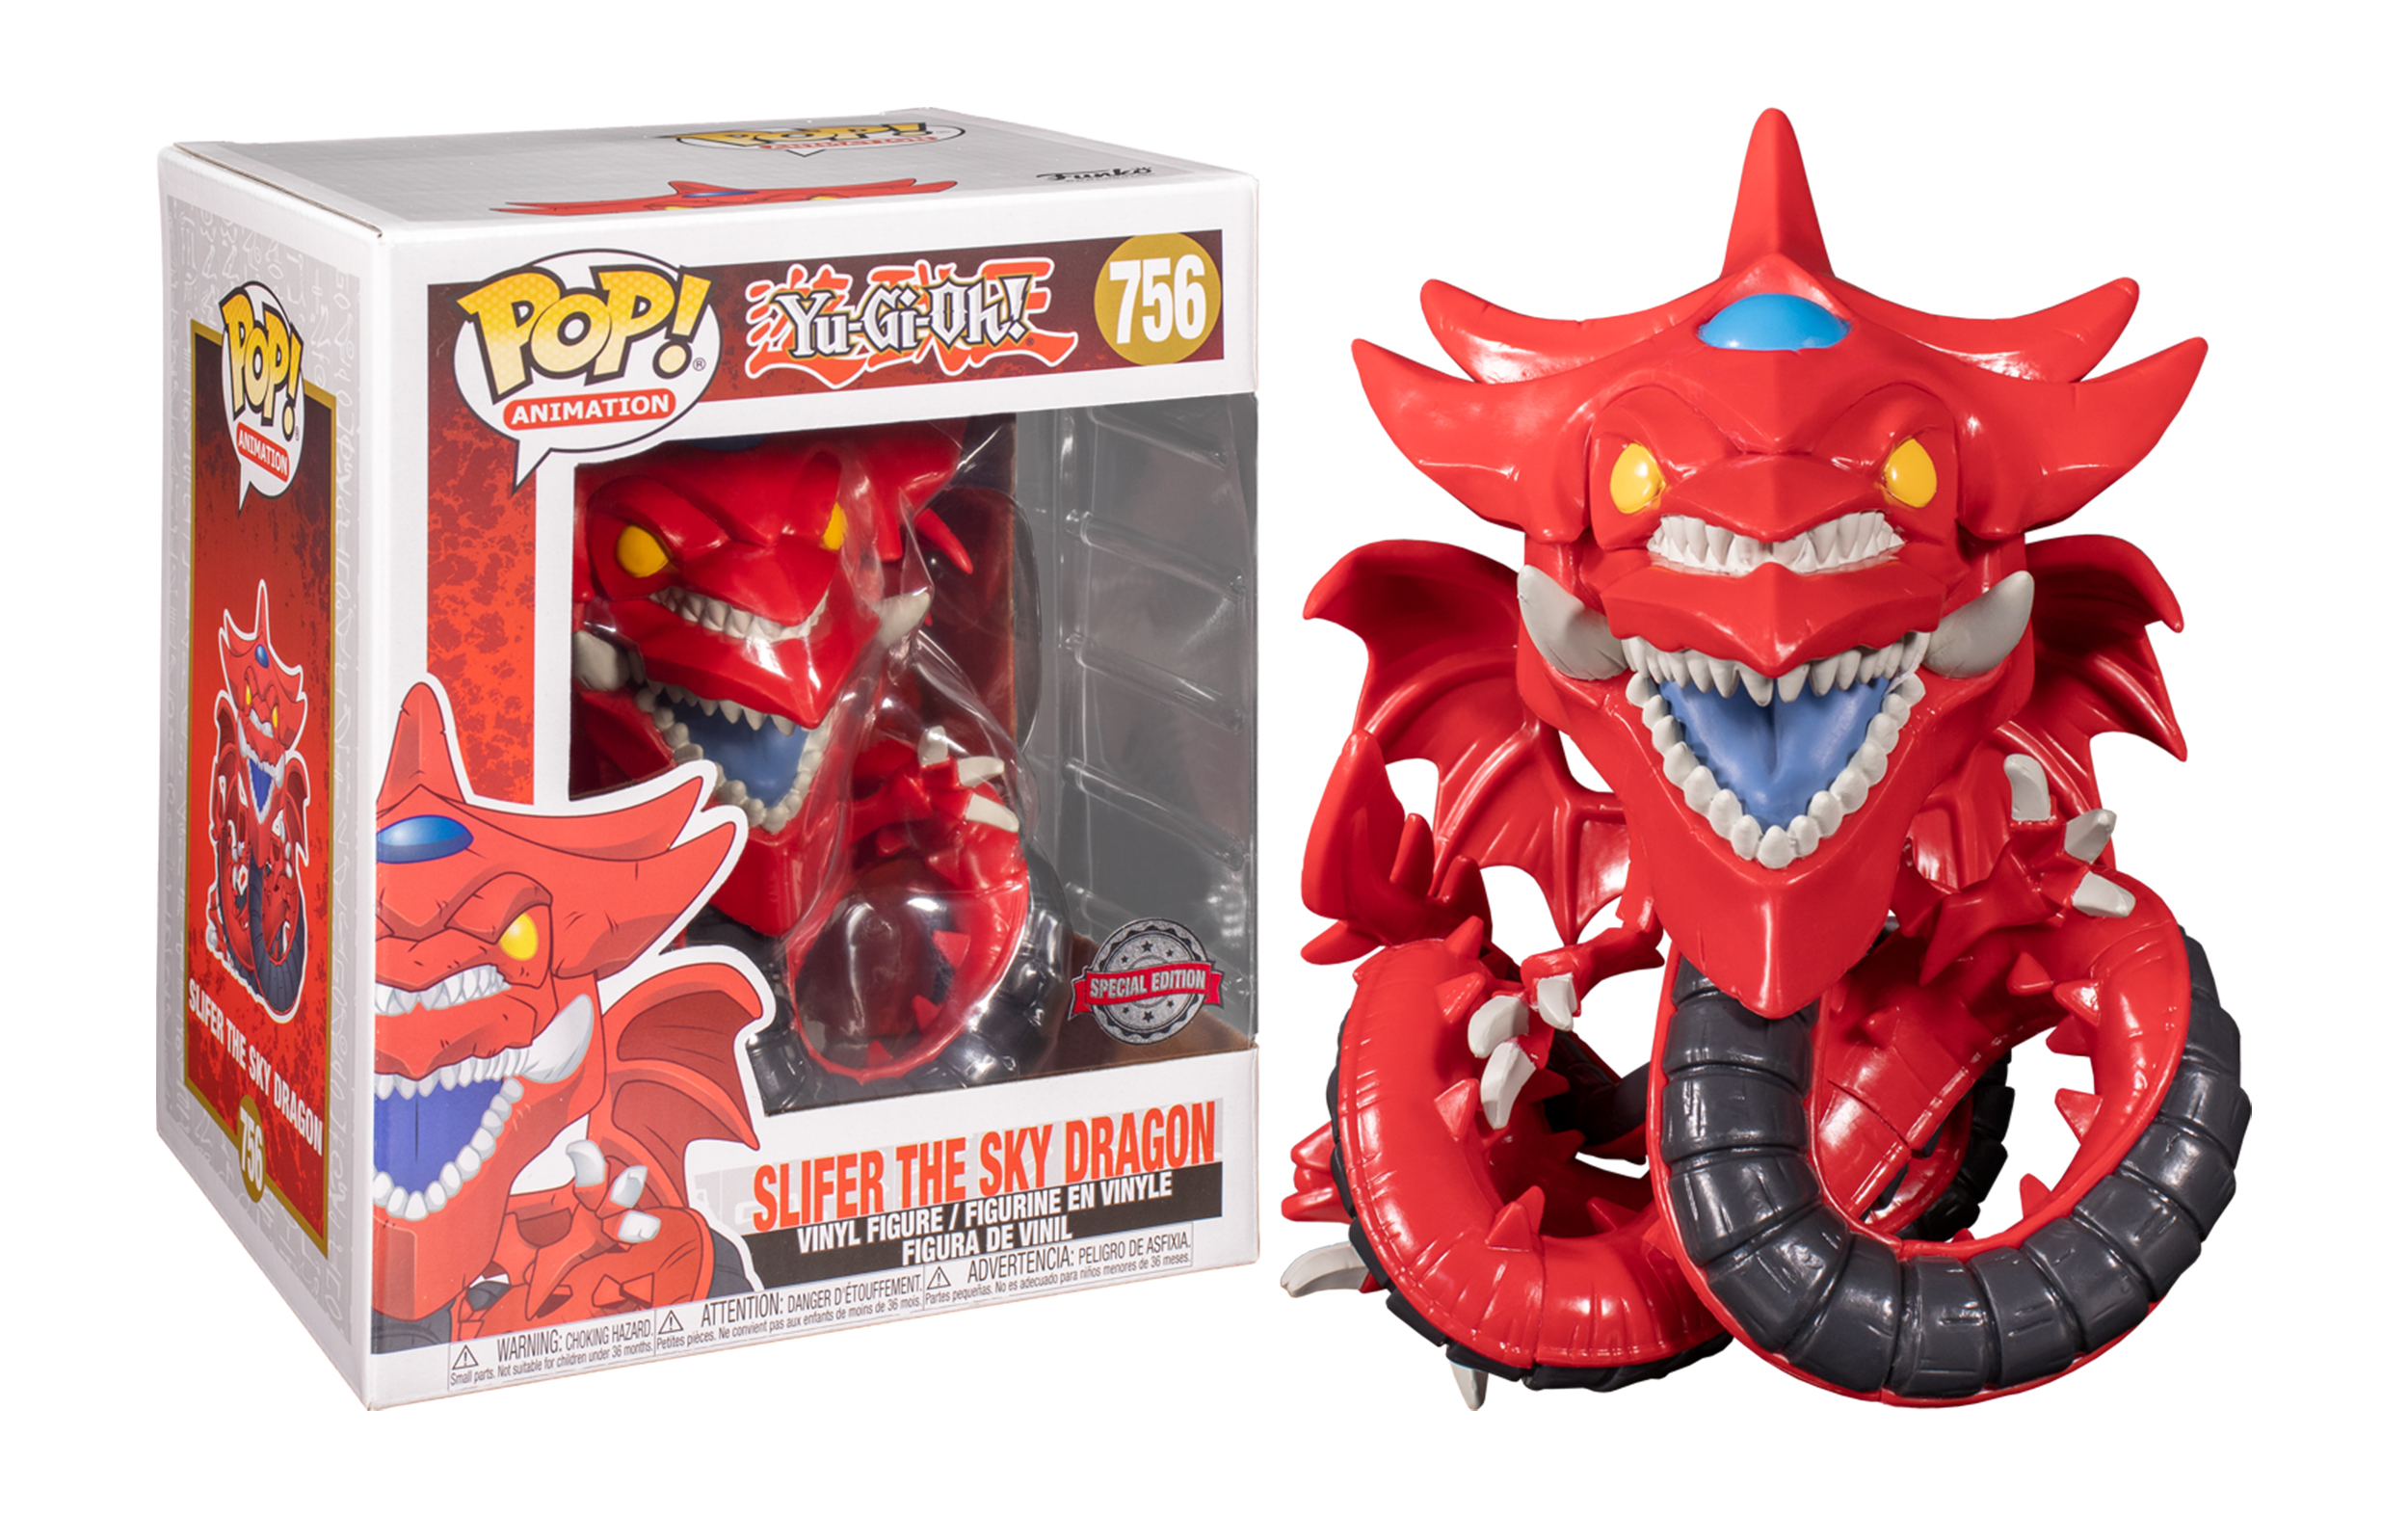 Yu-Gi-Oh Slifer the Sky Dragon 756 Funko POP Vinyl Figure